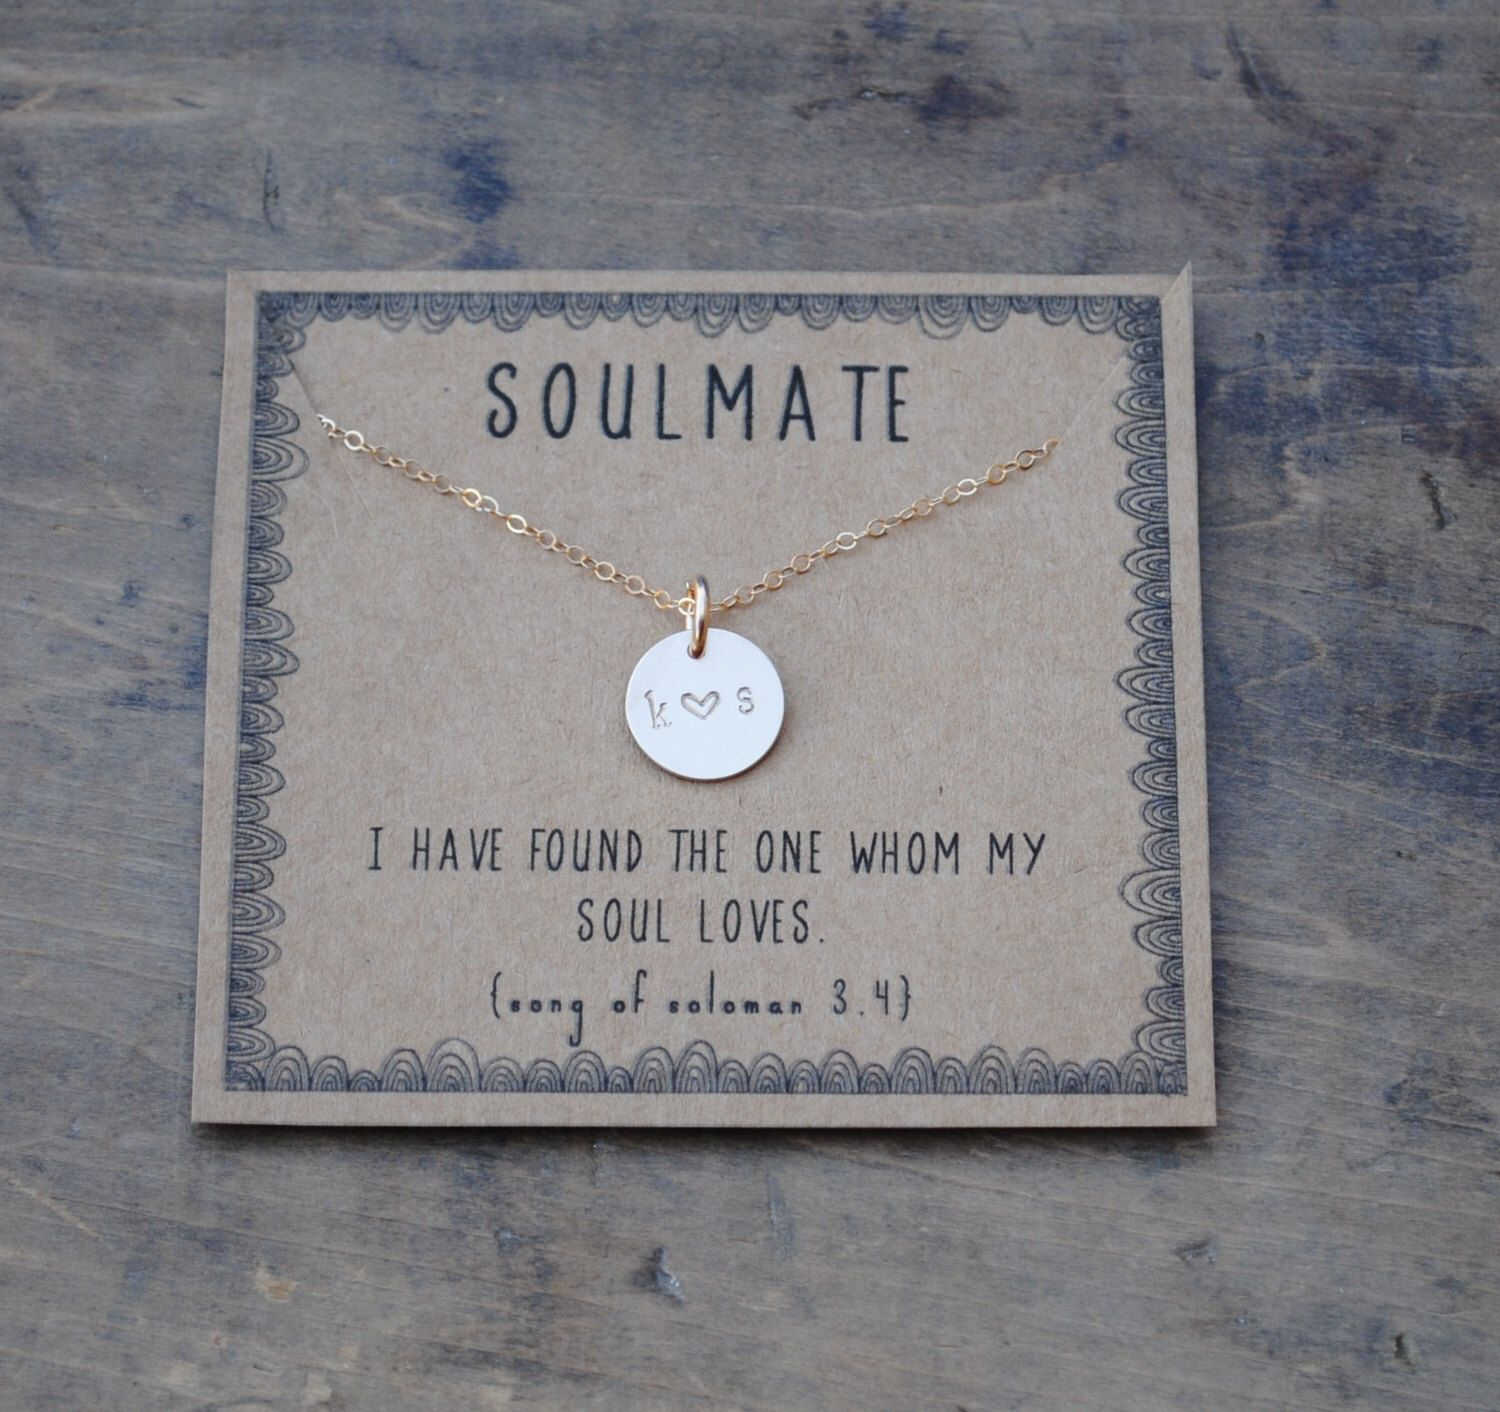 soulmate silver or goldfill layering necklace gift for girlfriend gift for wife personalized christmas gift by honeyverse on etsy